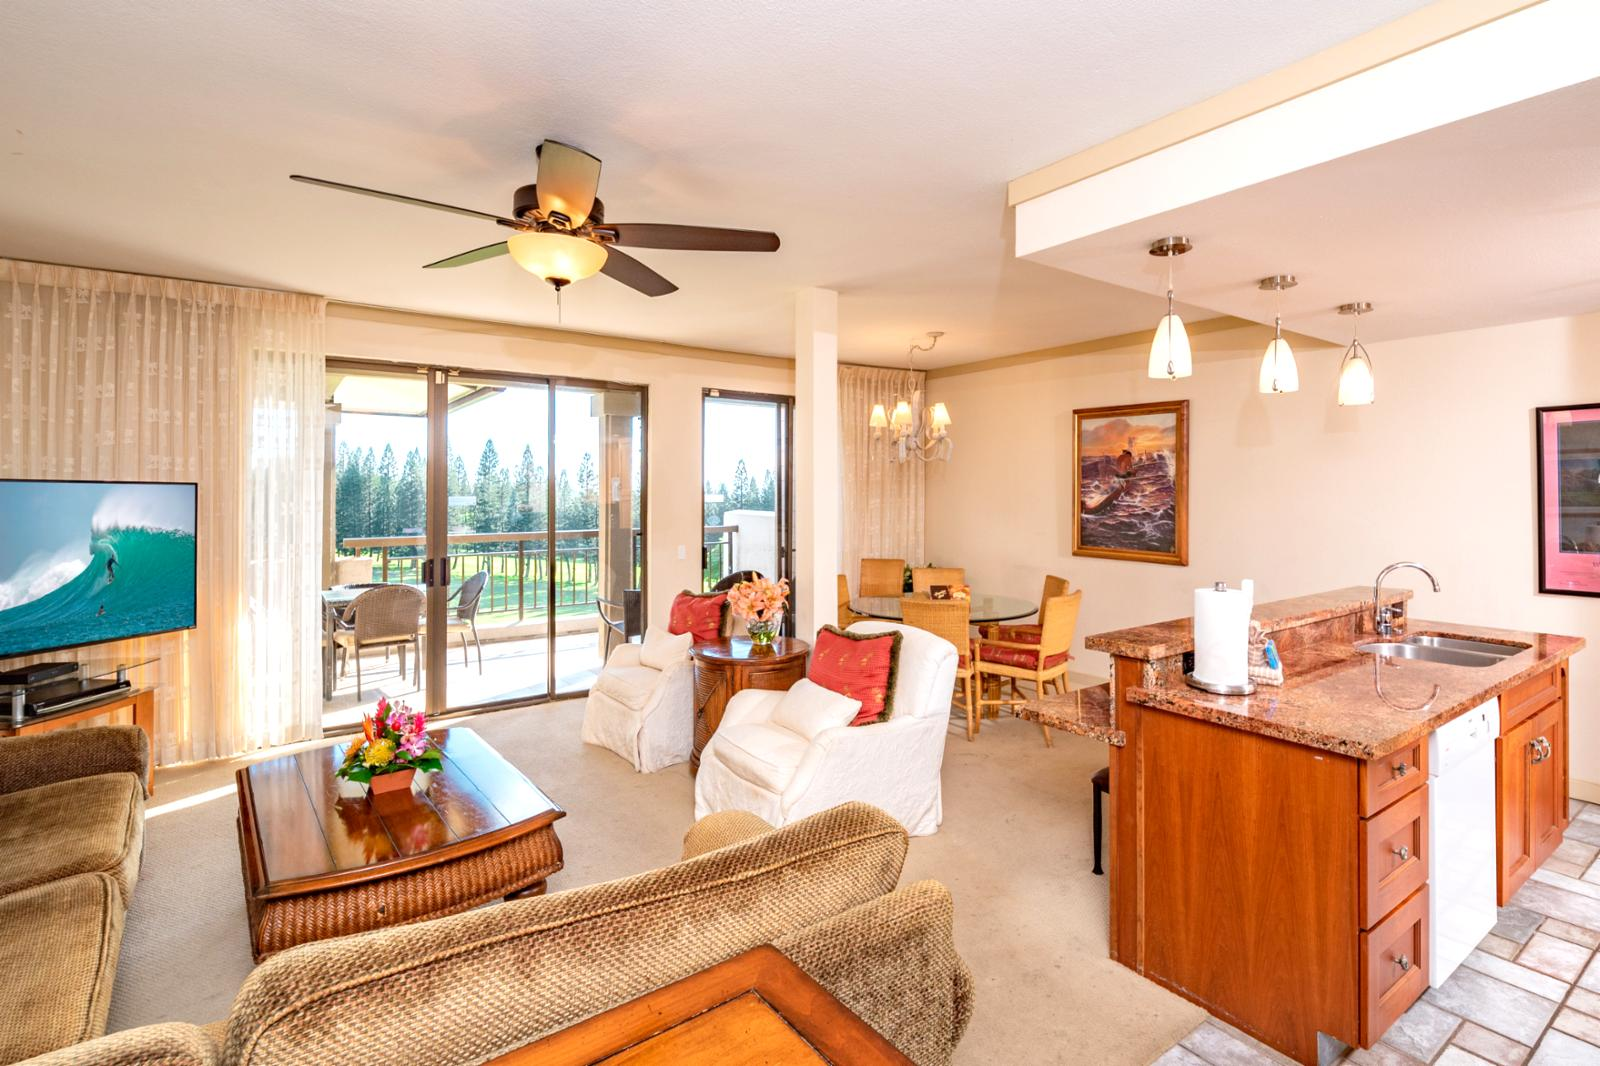 Equipped with ceiling fans and oversized layout, perfect for families!